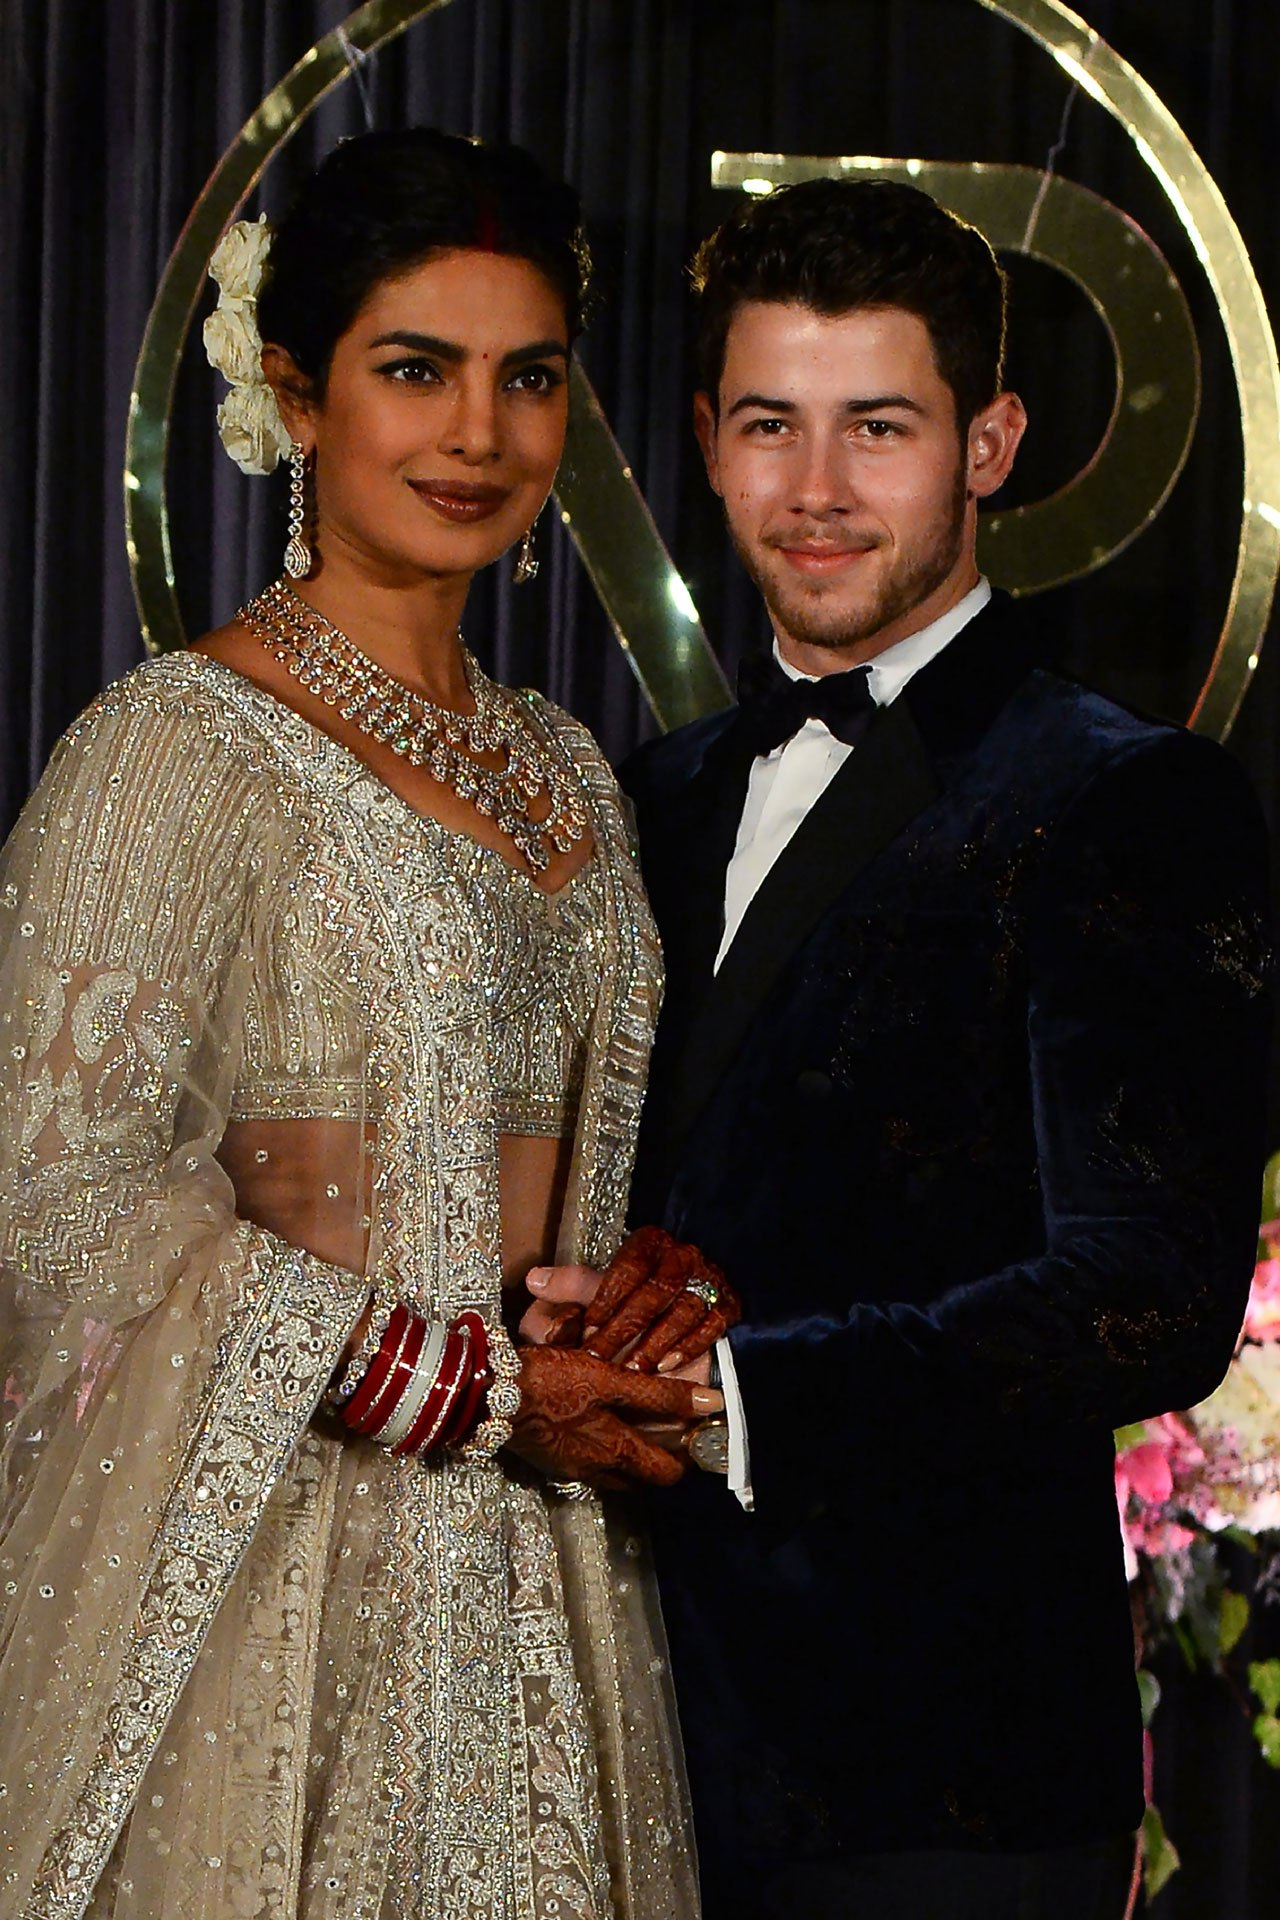 ab8ac85f50 Priyanka Chopra and Nick Jonas share their intimate wedding portraits